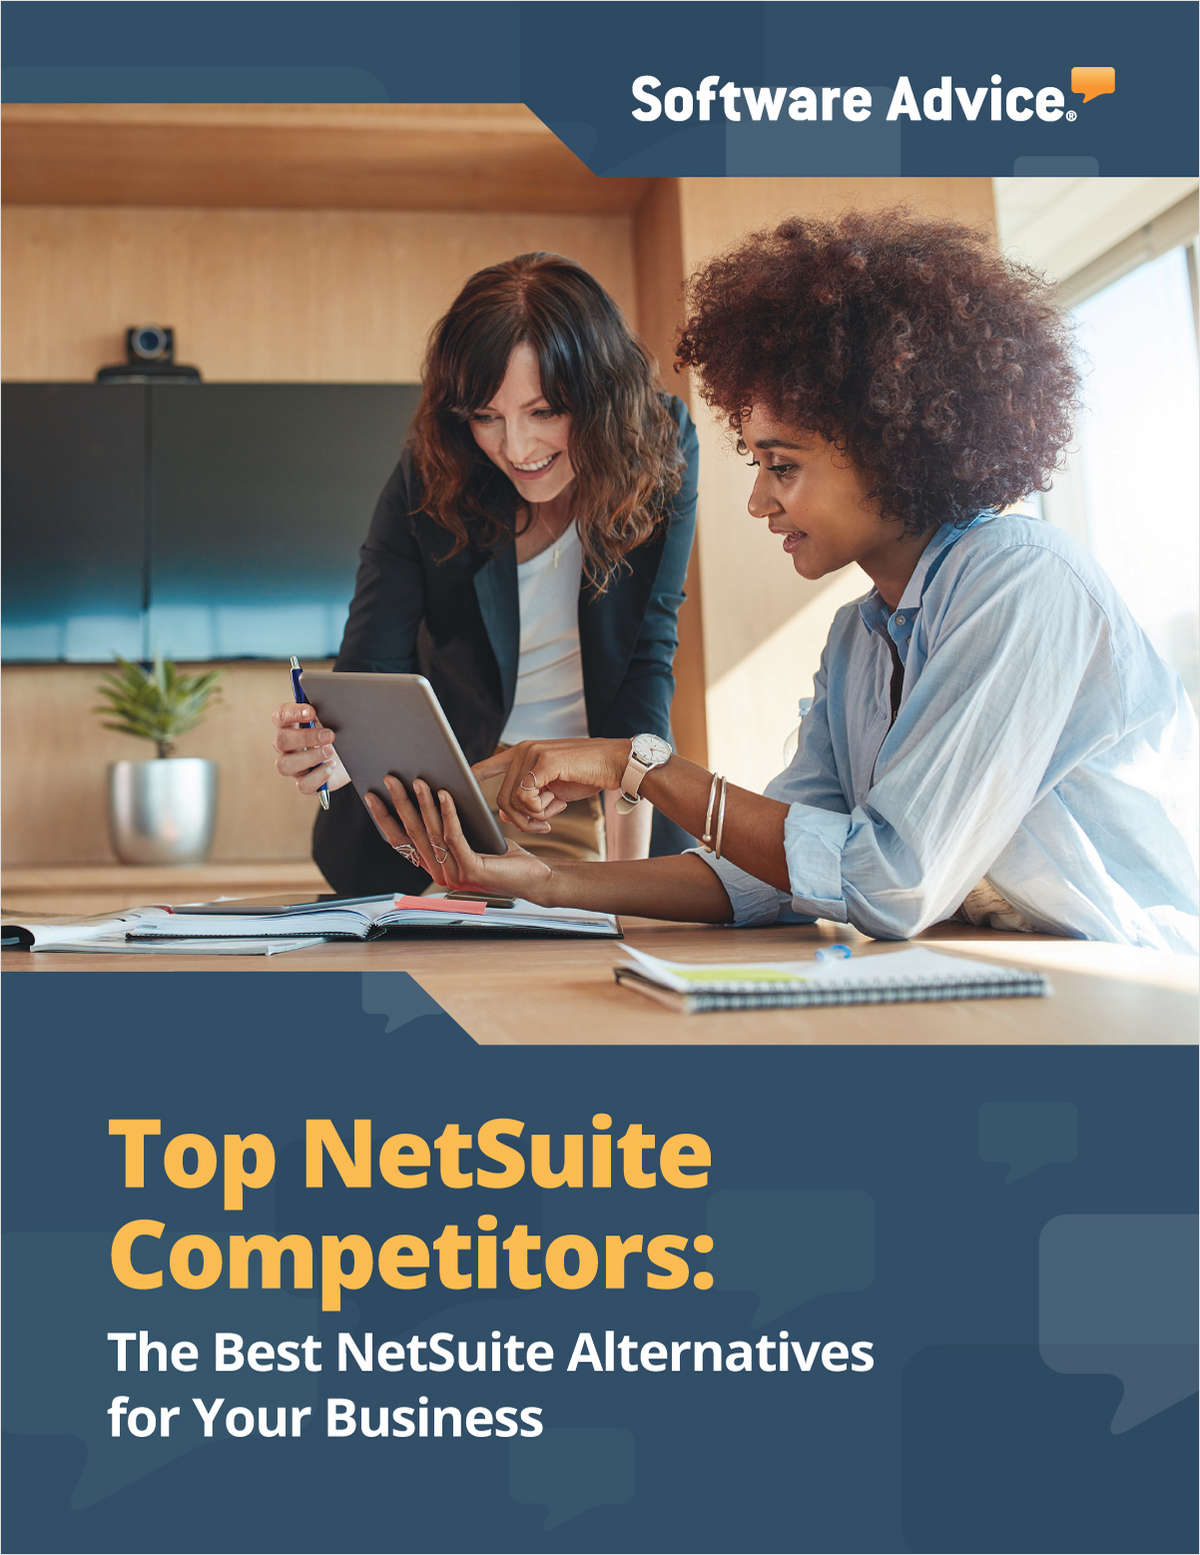 Top Recommended Netsuite Competitors and Alternatives